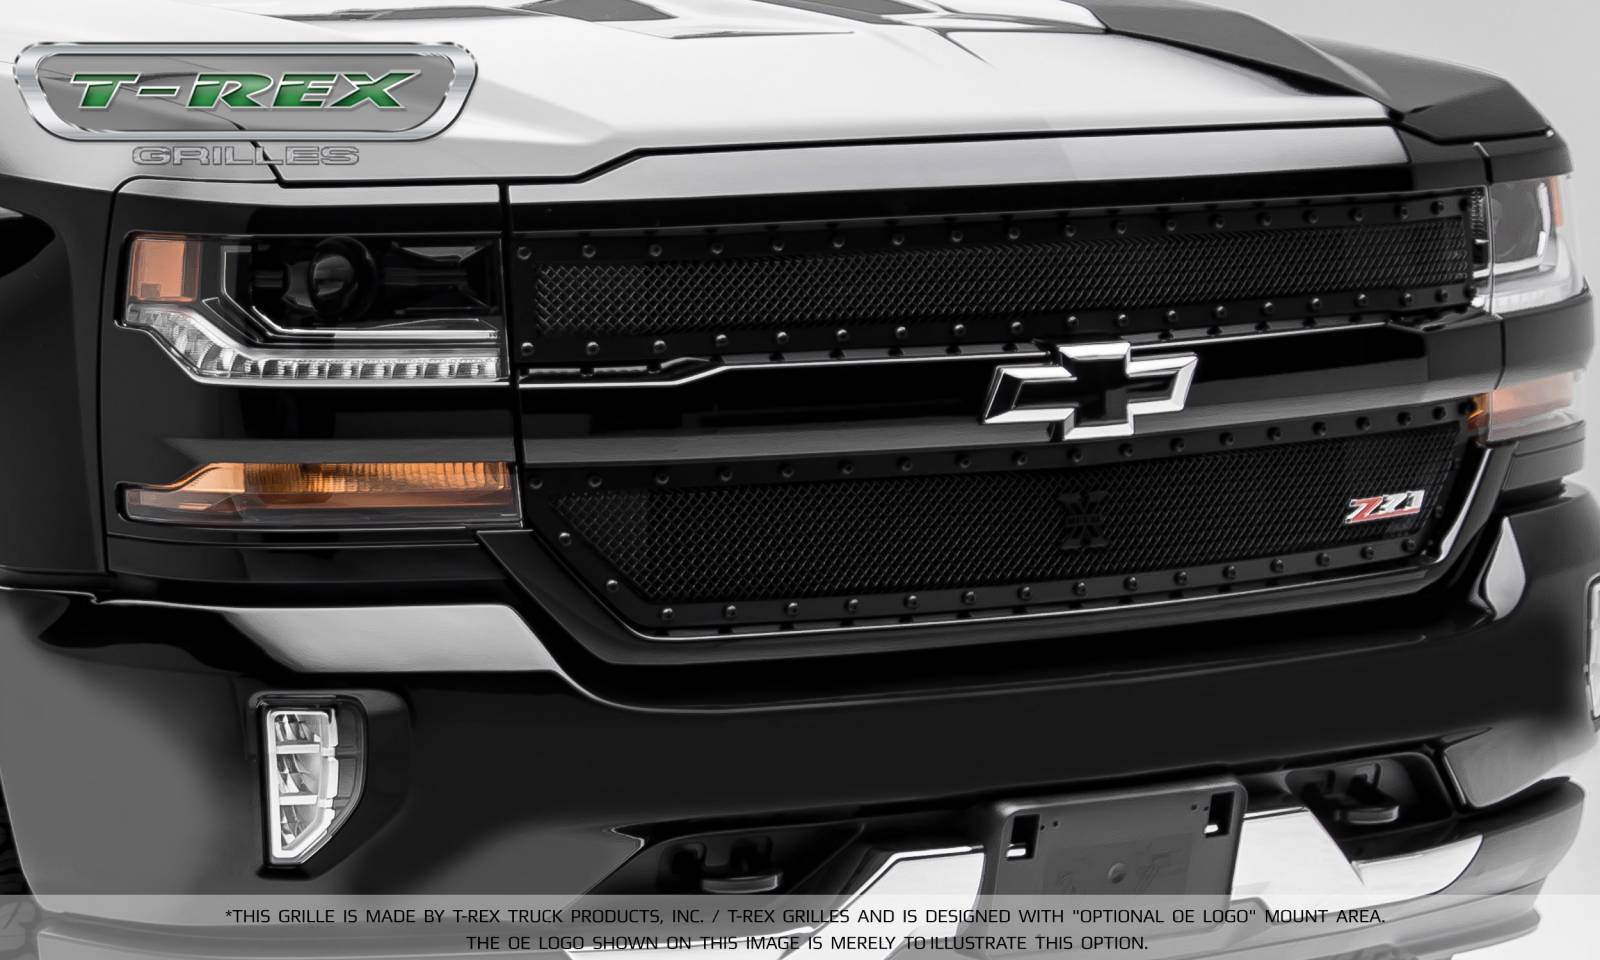 Chevy Silverado Black Out >> Chevrolet Silverado 1500 X-METAL Series, STEALTH METAL - Blacked Out All Black, 2 Pc Main Grille ...